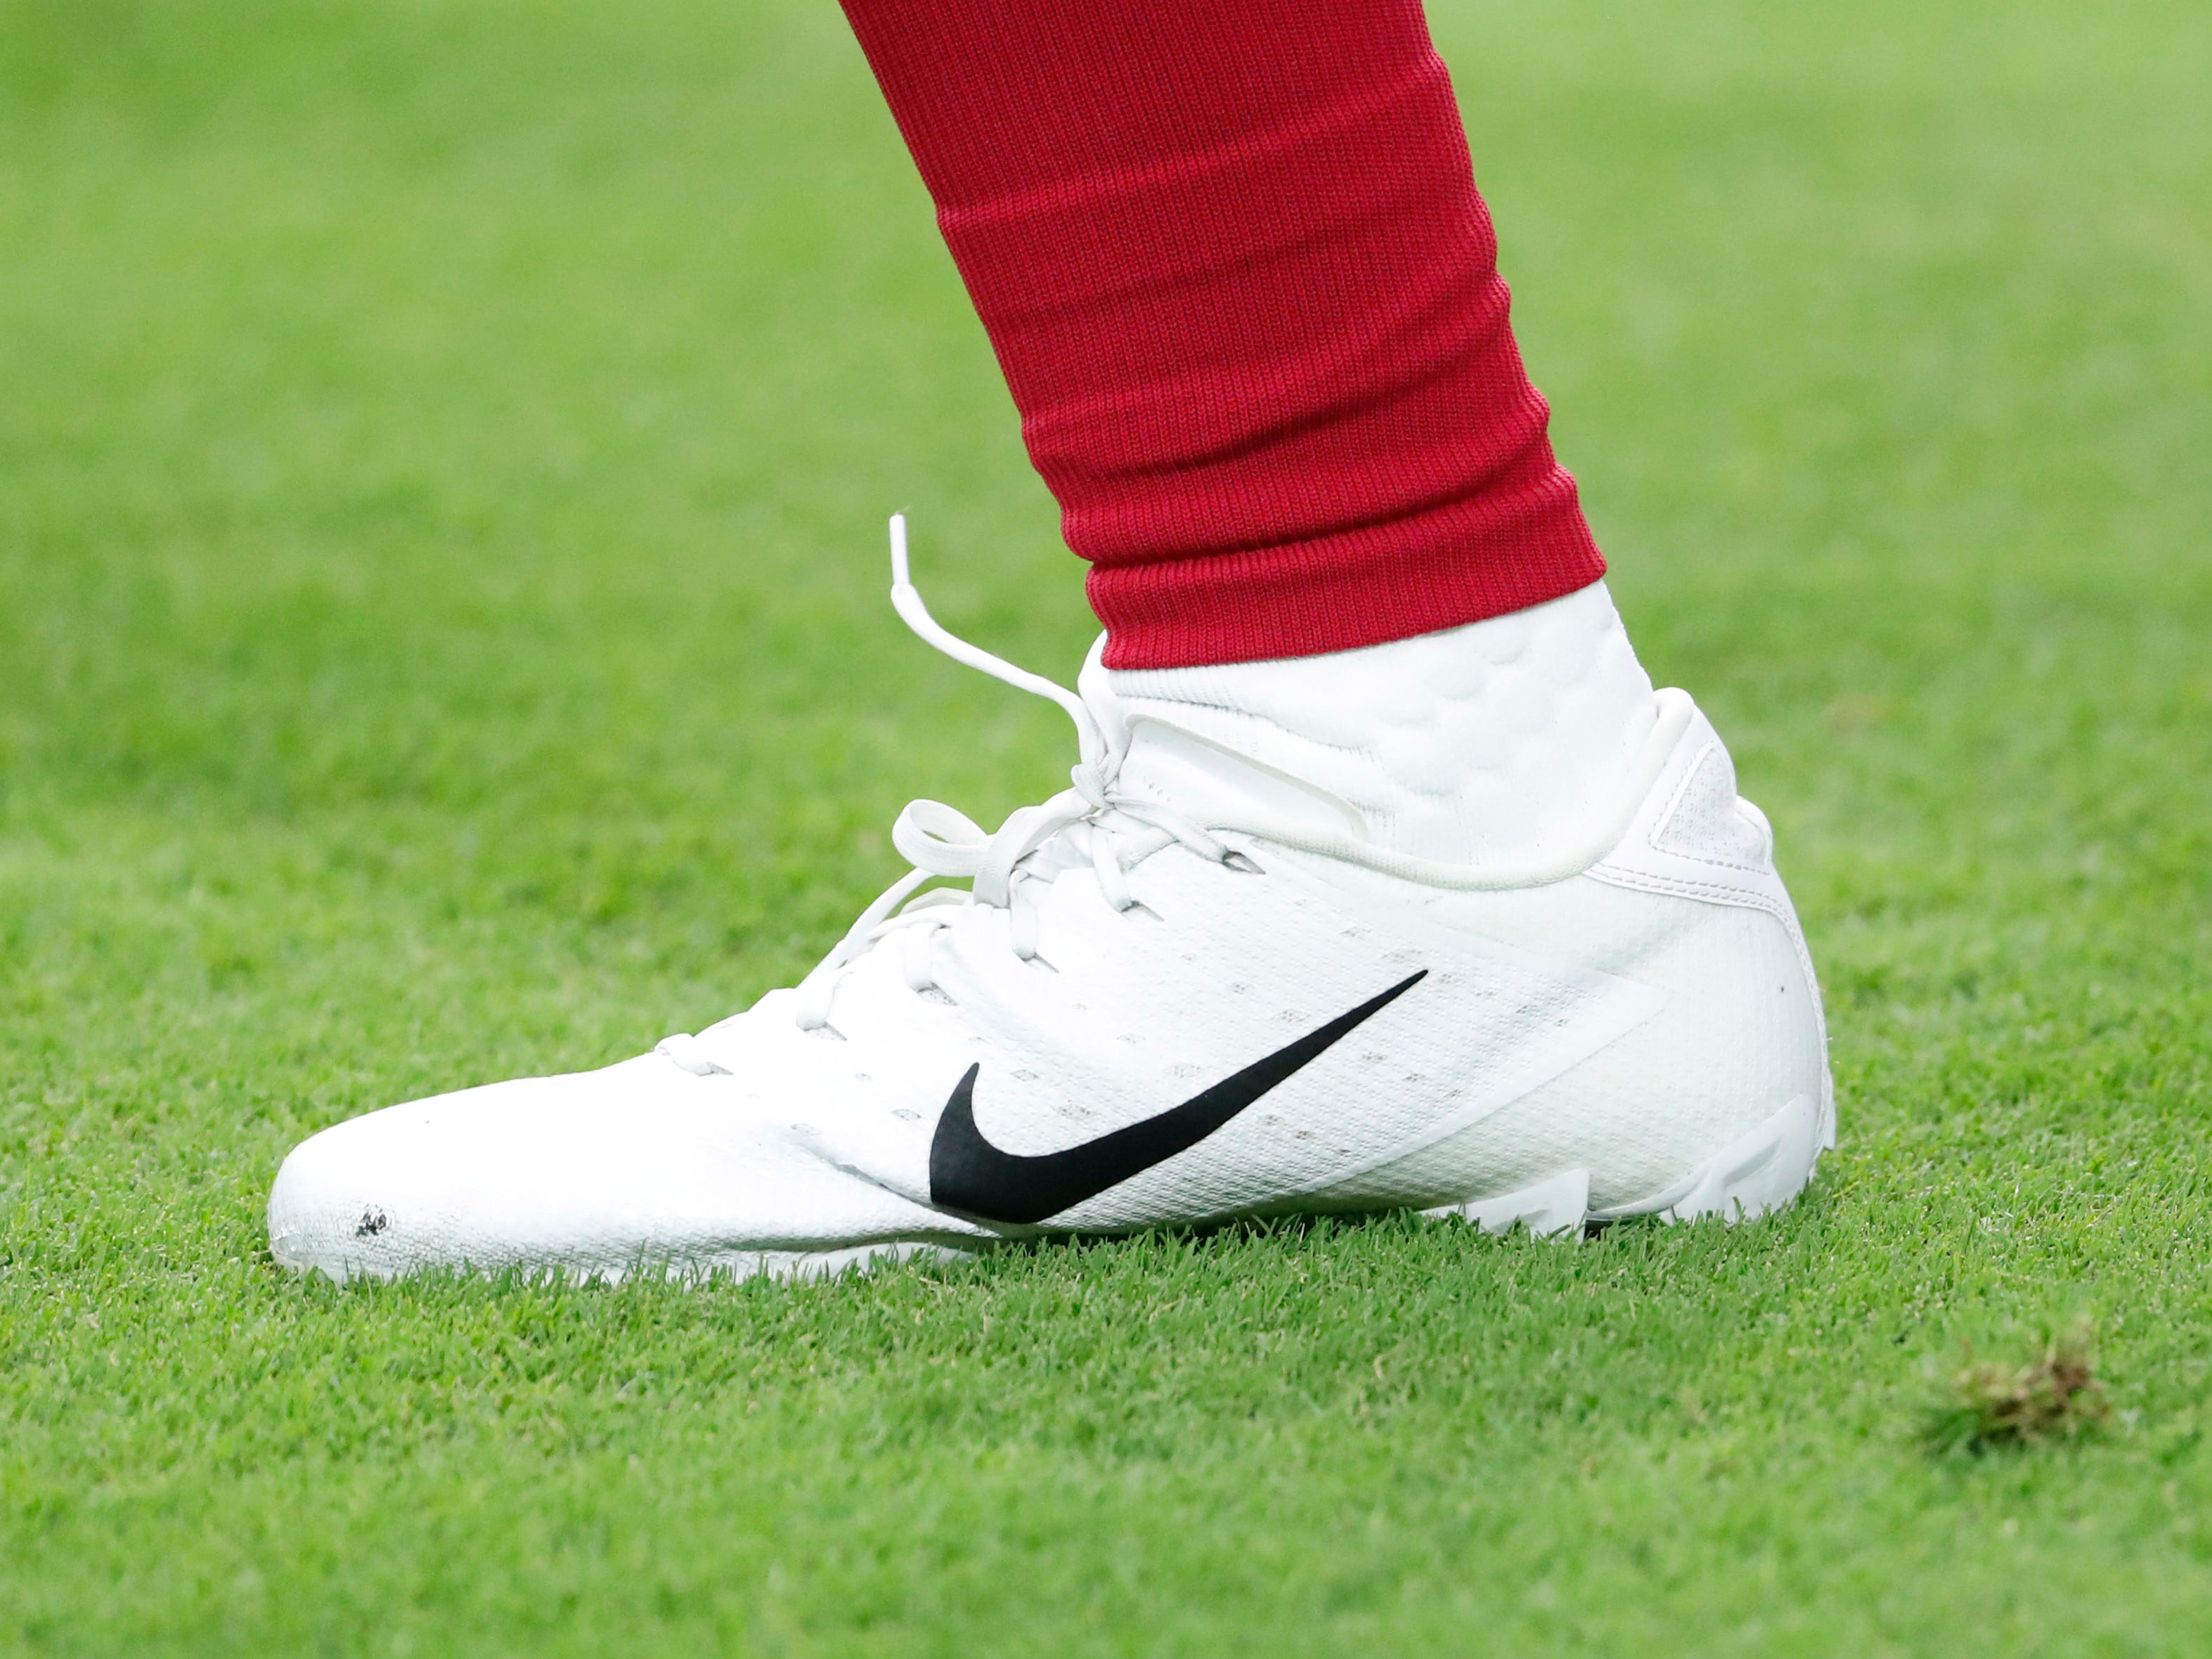 Cleats icon before NFL action between the Arizona Cardinals and the Chicago Bears at State Farm Stadium in Glendale, Ariz. September 23, 2018.